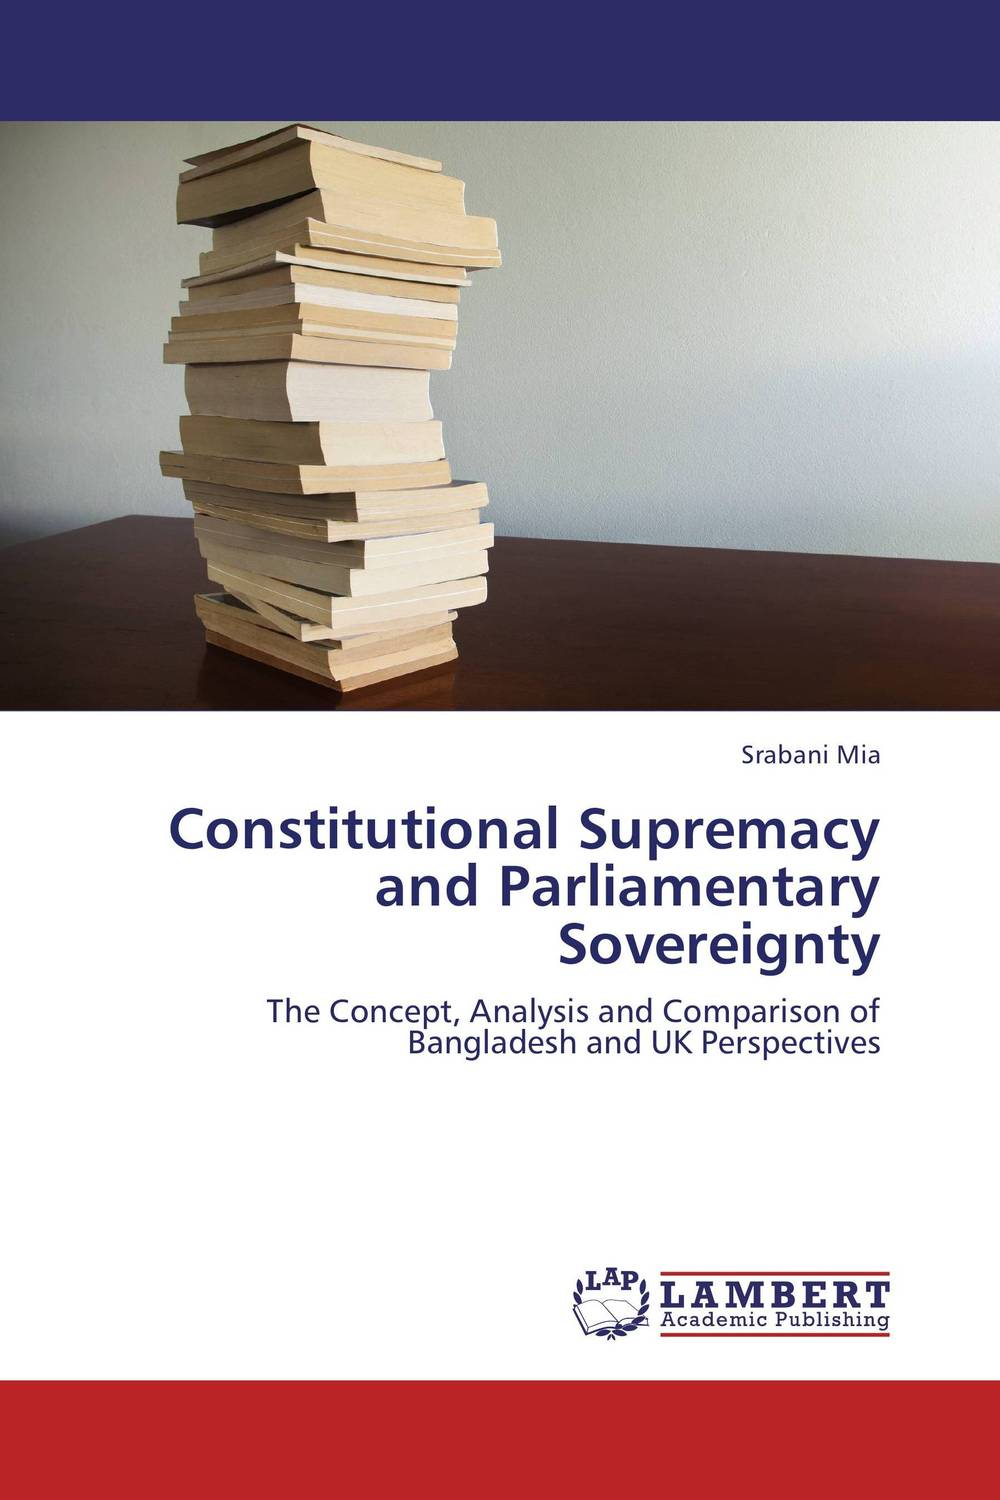 Constitutional Supremacy and Parliamentary Sovereignty david m o brien constitutional law and politics 6e v 2